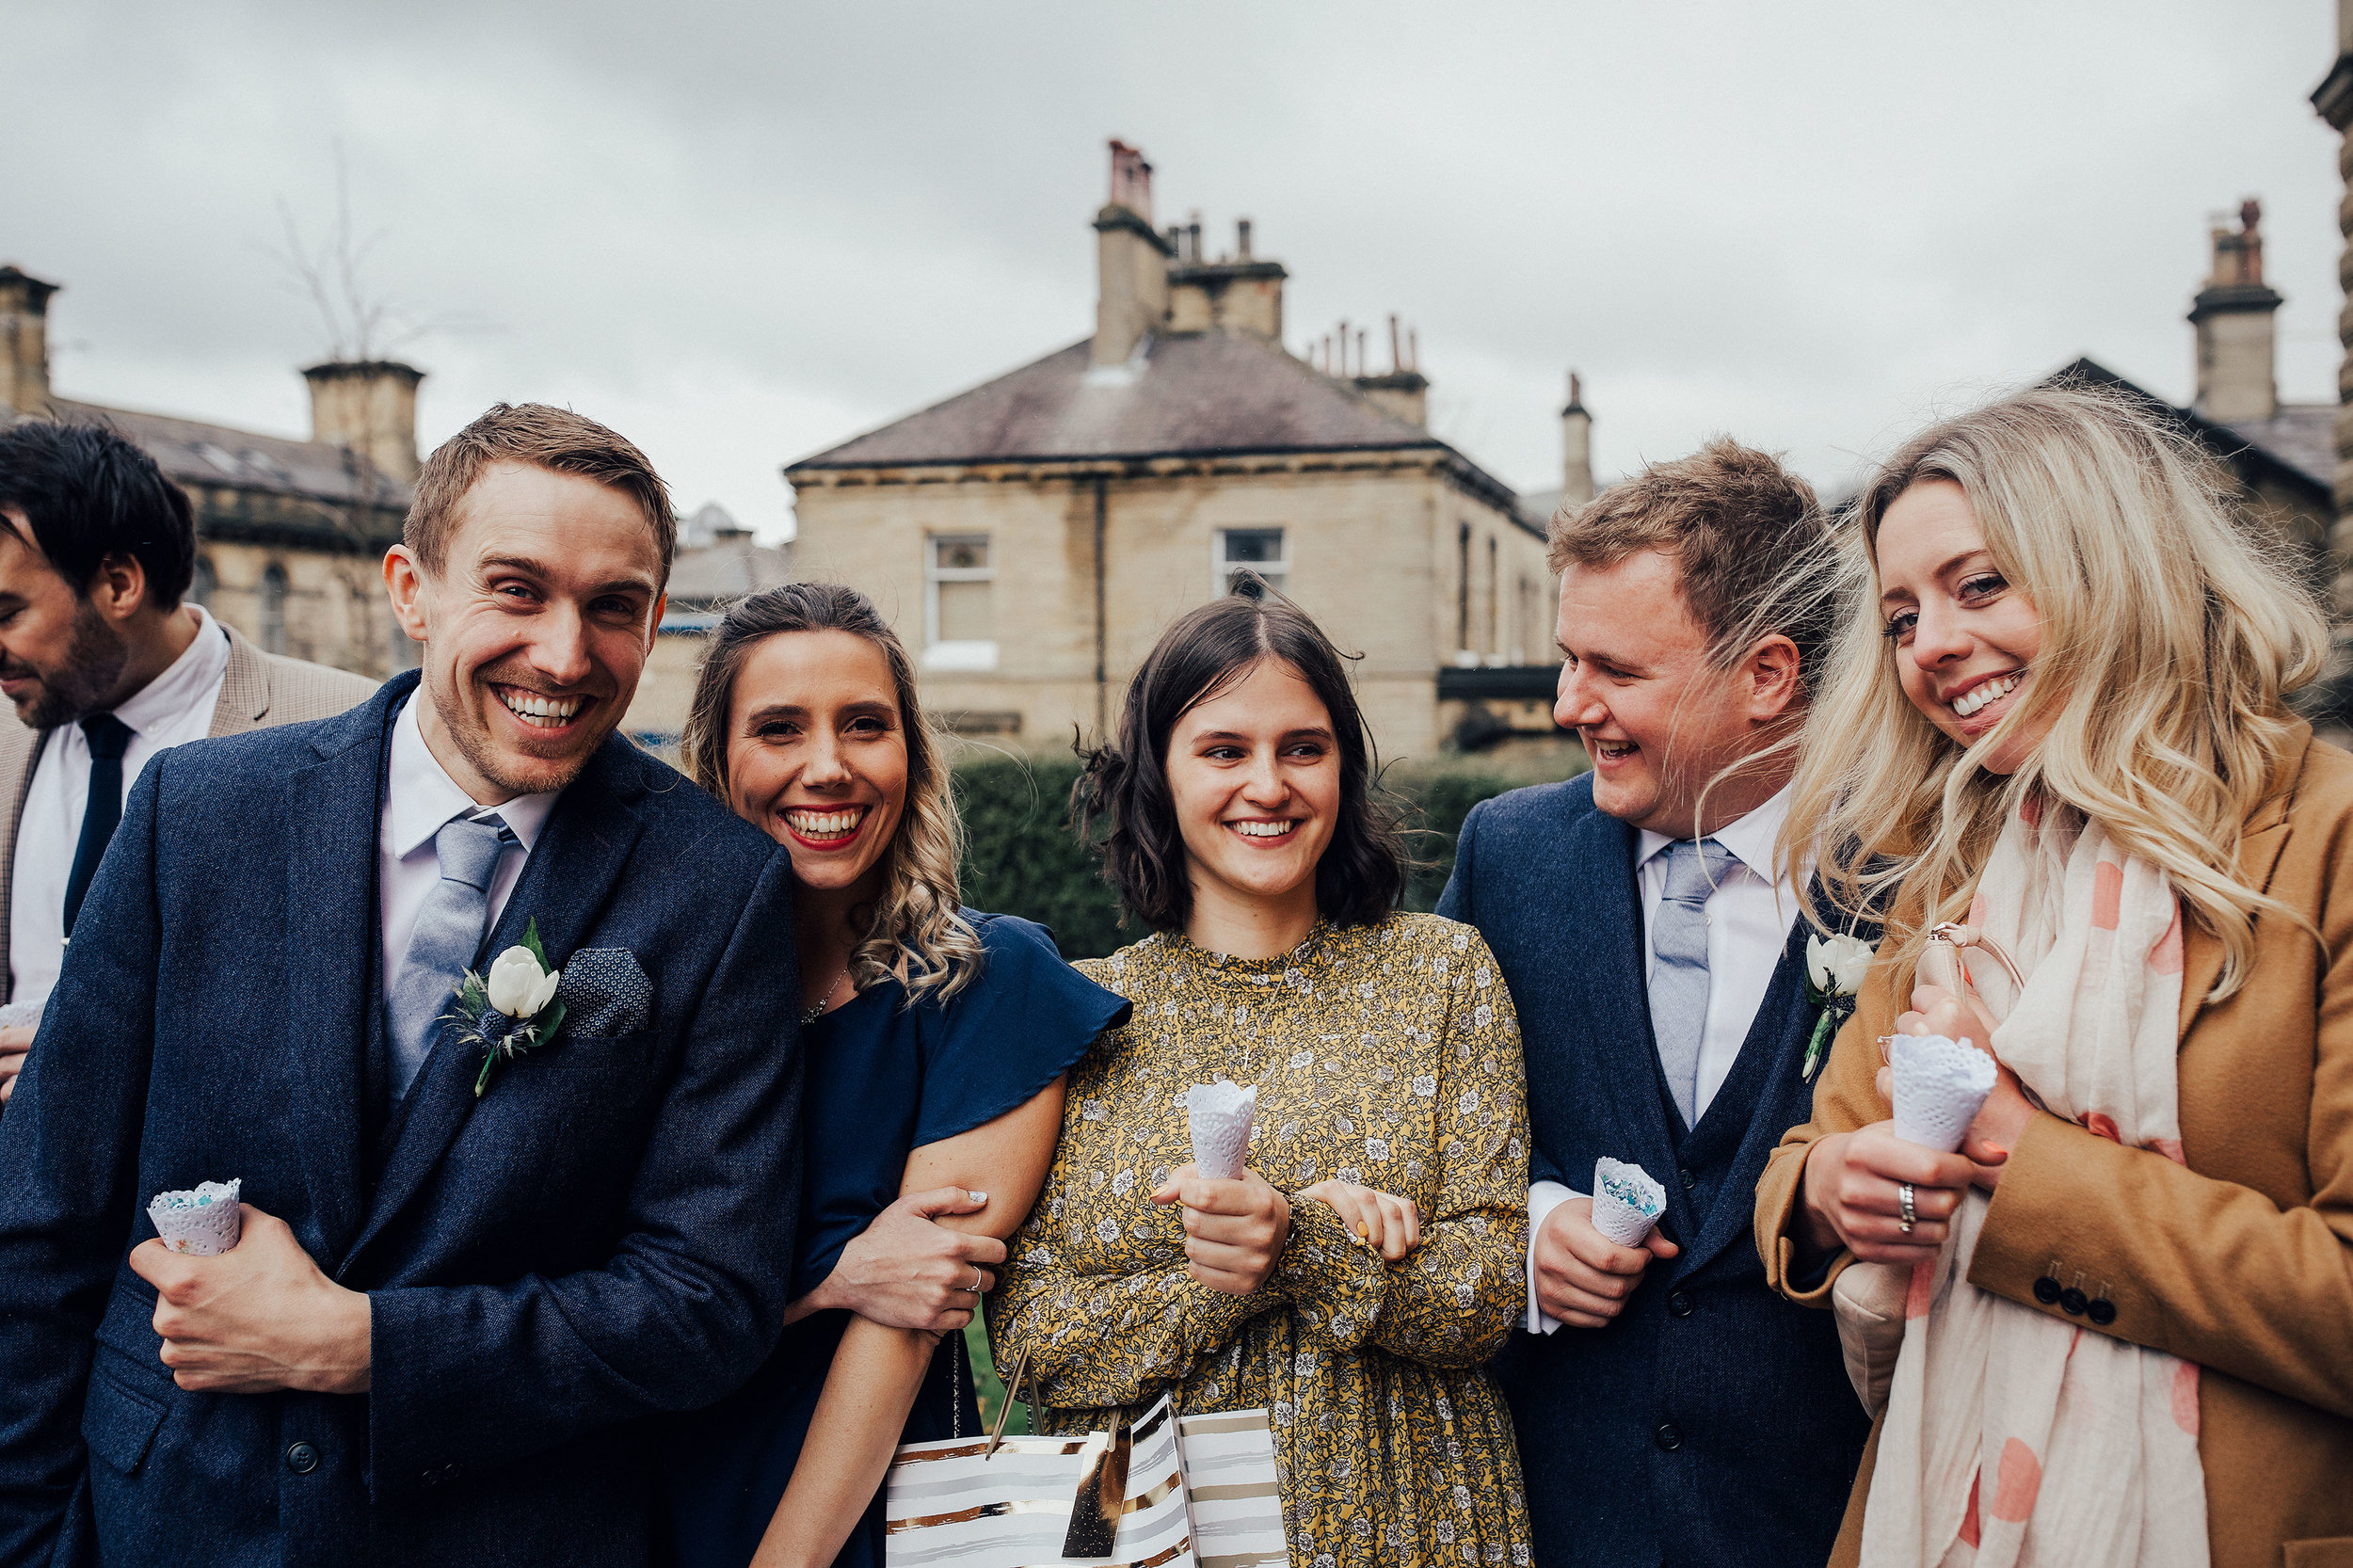 PJ_PHILLIPS_PHOTOGRAPHY_2018_SCOTLAND_WEDDING_PHOTOOGRAPHER_367.jpg